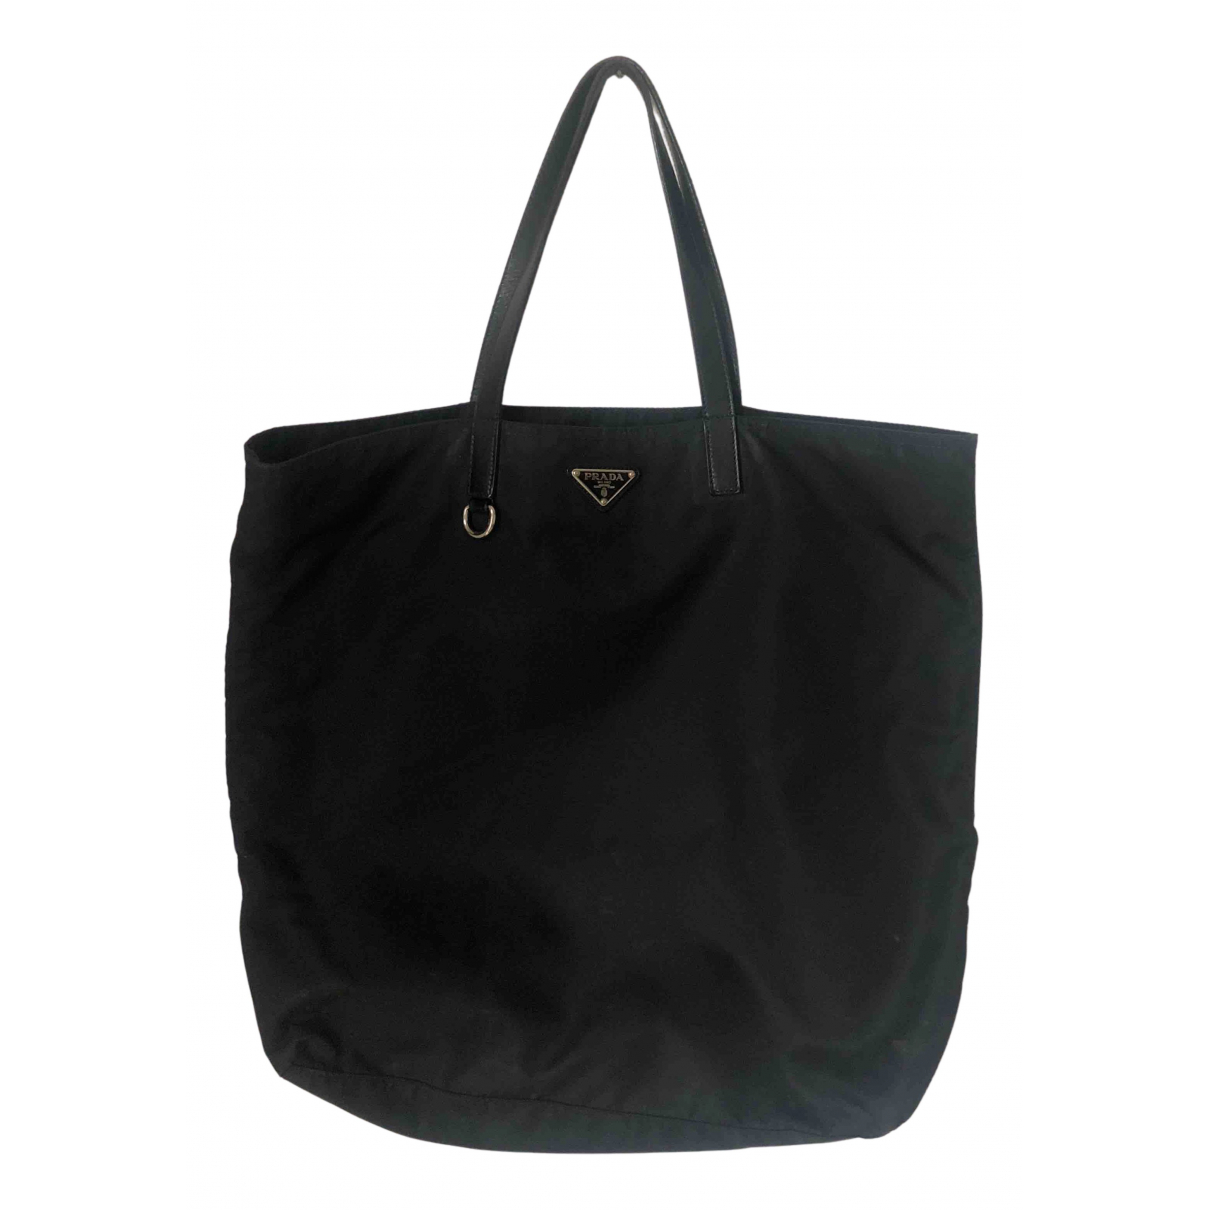 Prada N Black handbag for Women N